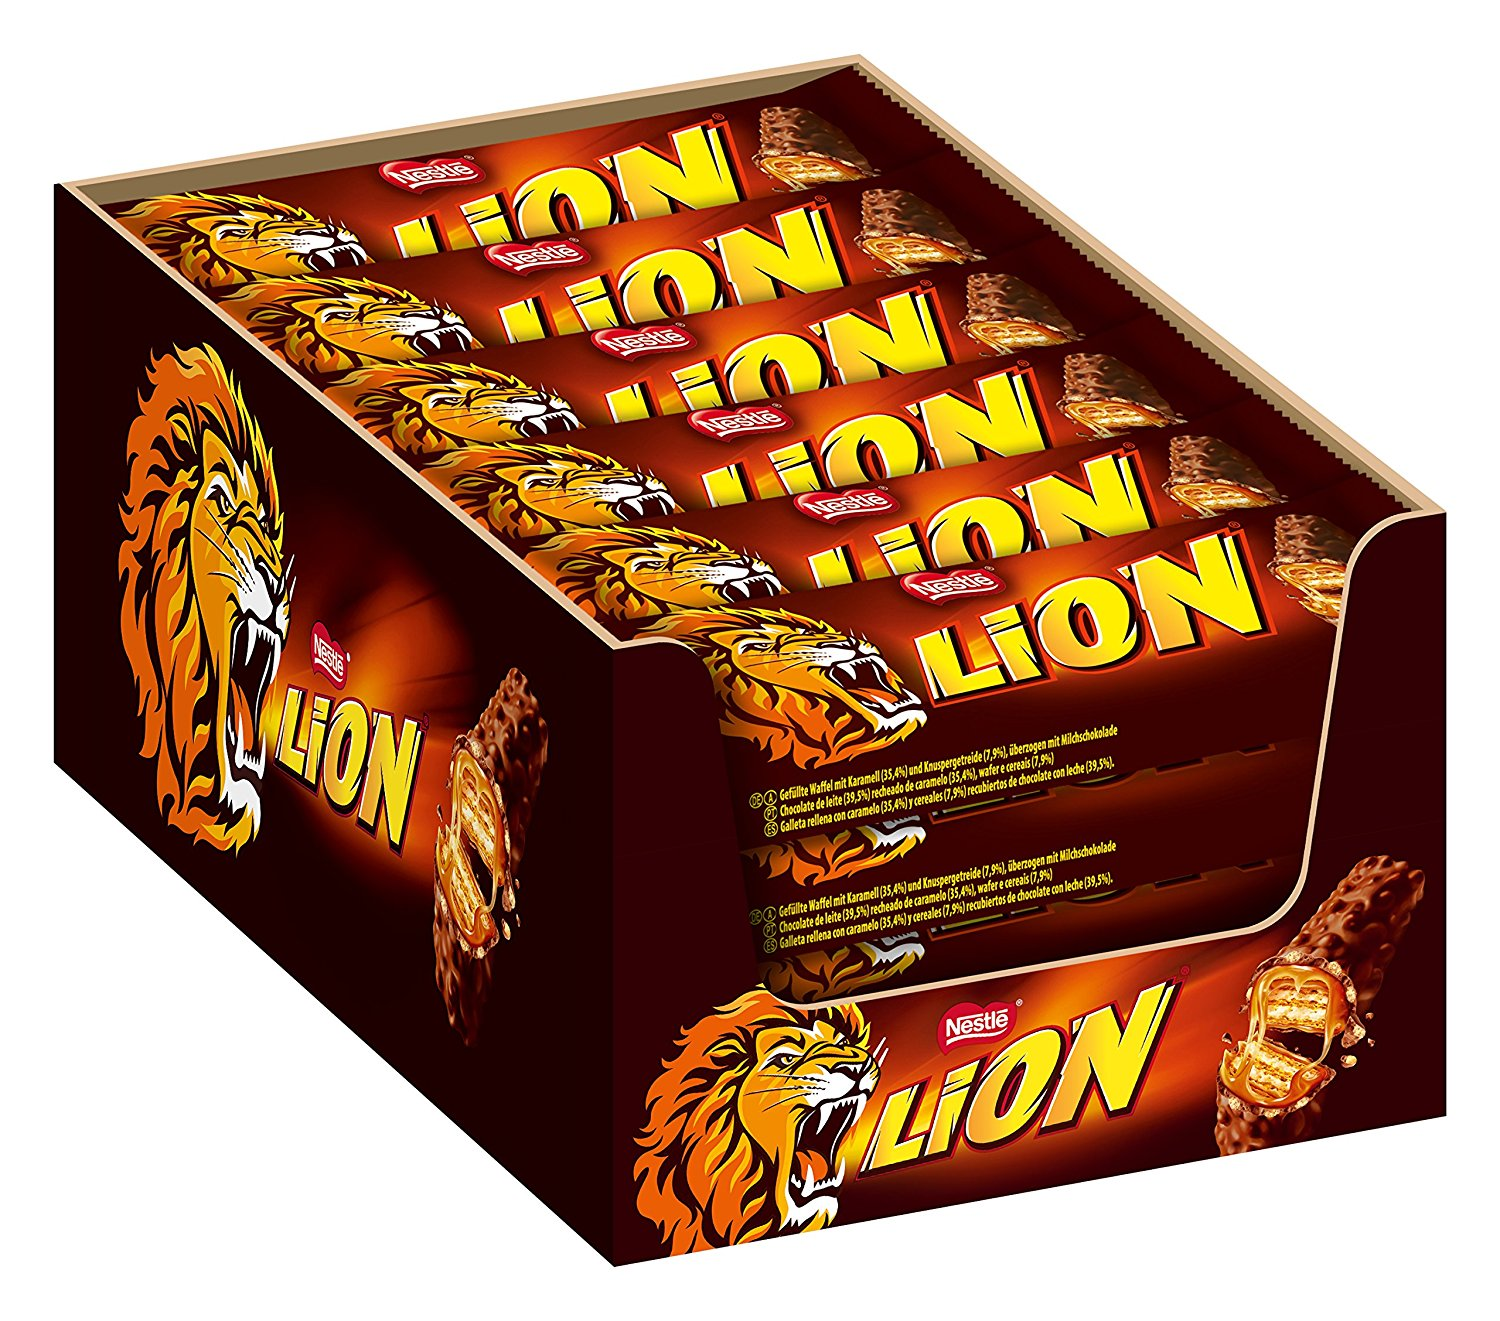 Lion Schoko-Riegel Nestle amazon